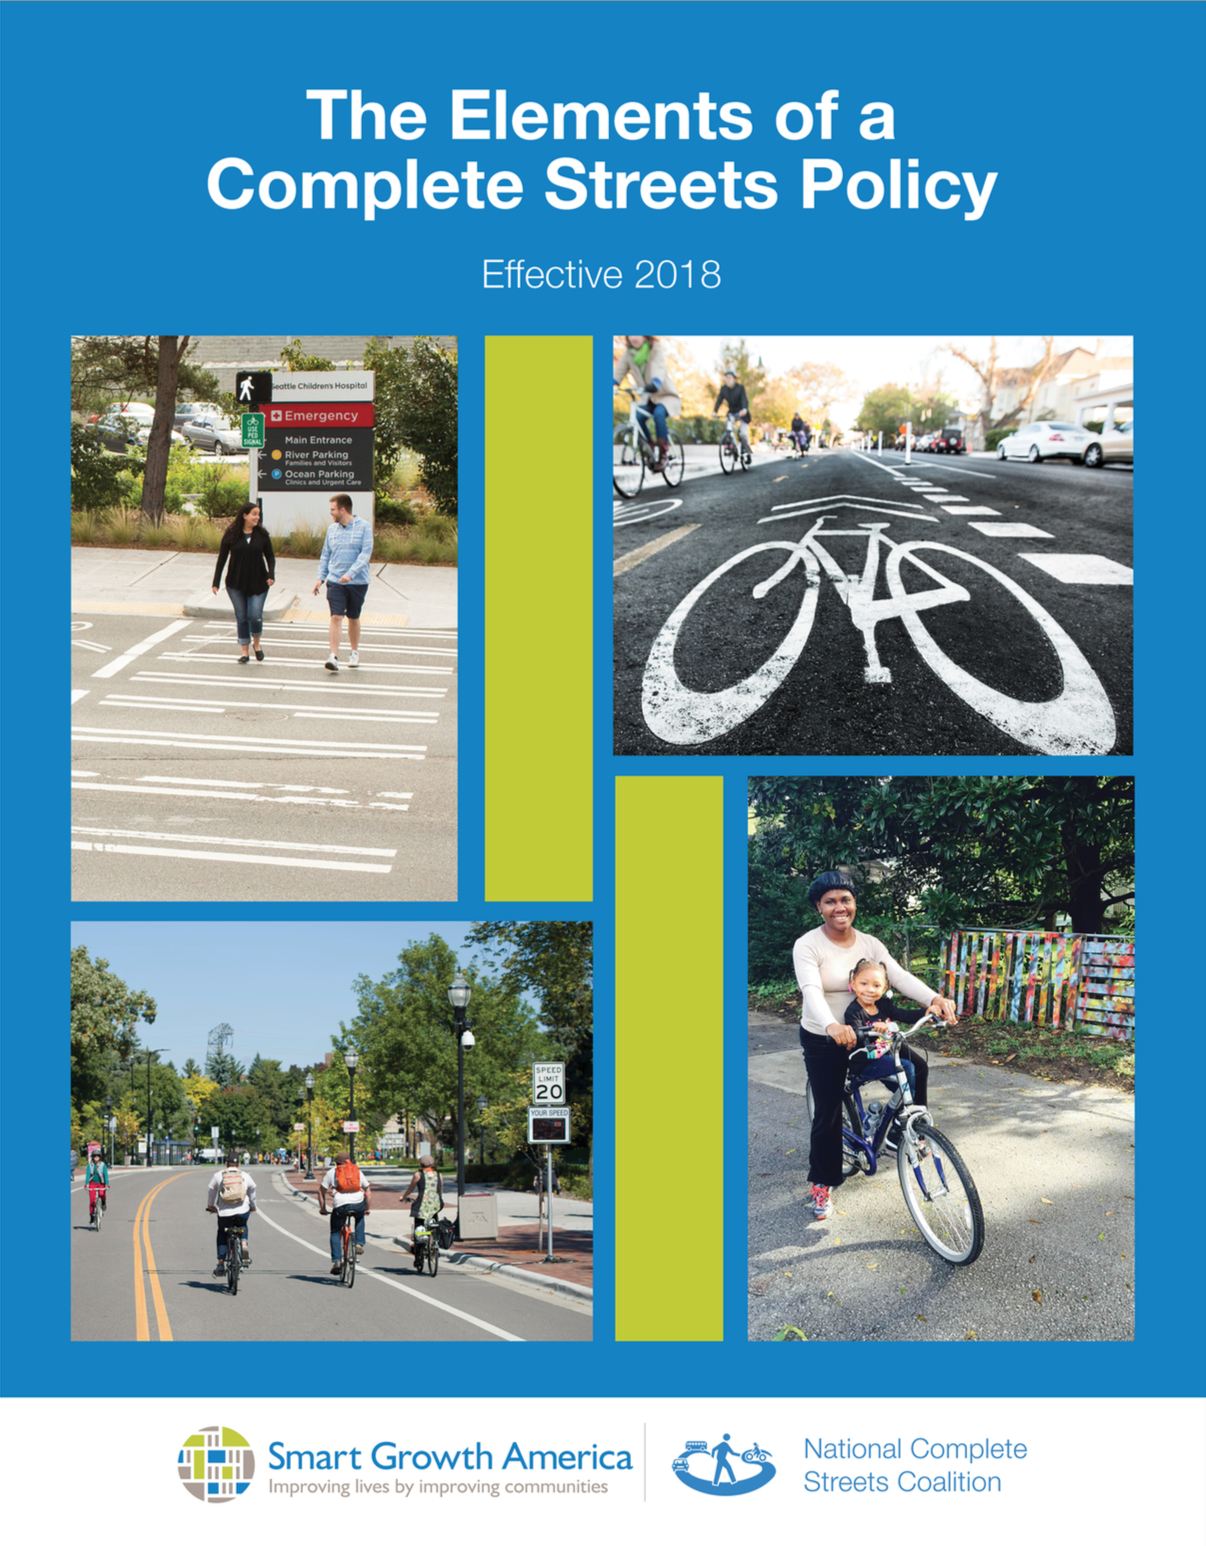 Elements of a Complete Streets Policy